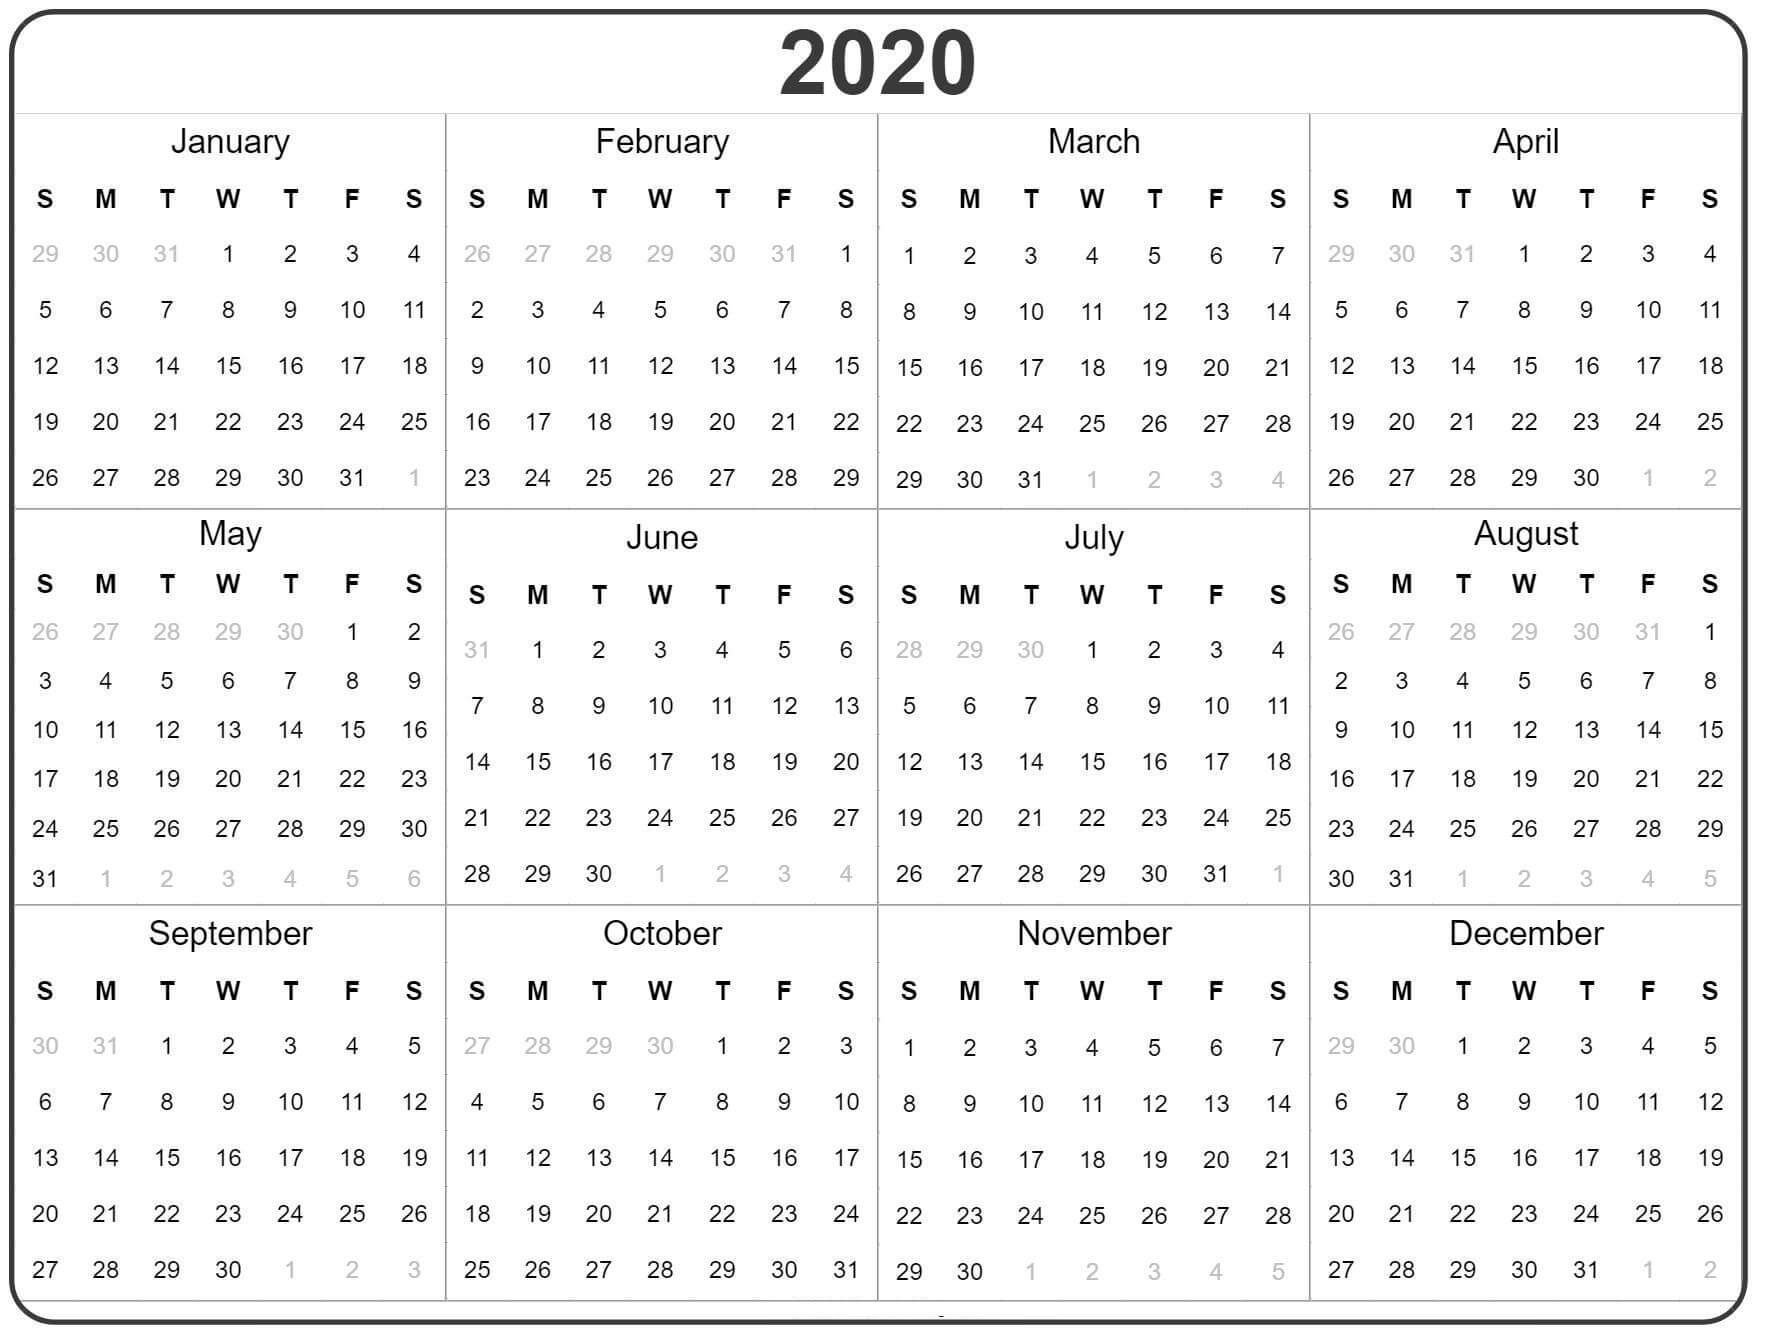 Free Yearly Calendar 2020 With Notes - 2019 Calendars For with Year At A Glance 2020 Printable Calendar